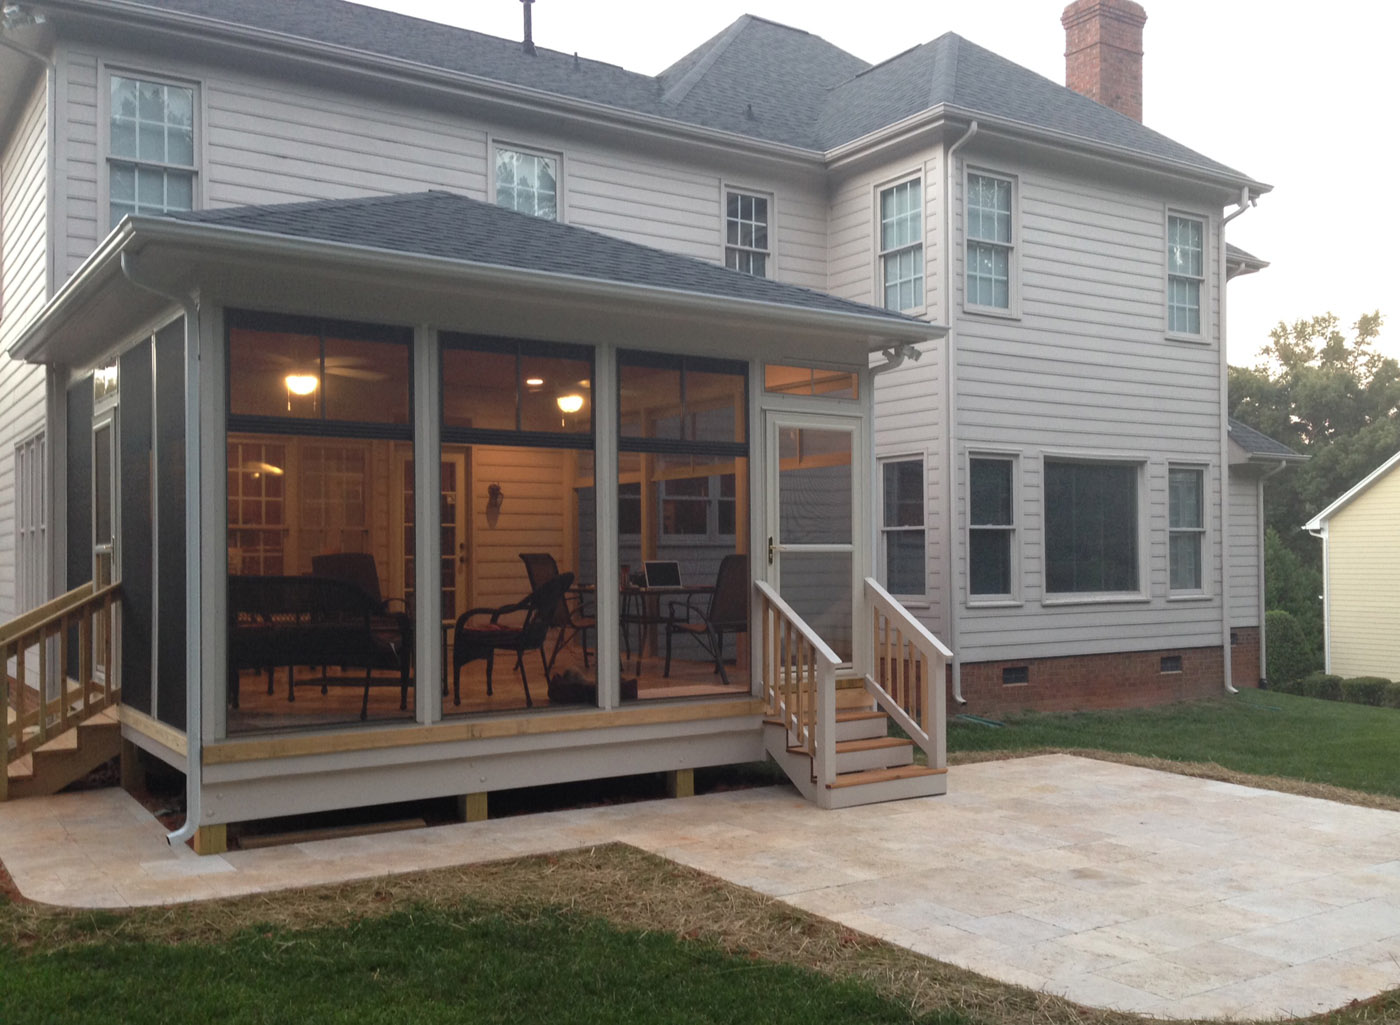 A salt lake city screened in porch for luxurious outdoor for Shed roof screened porch plans